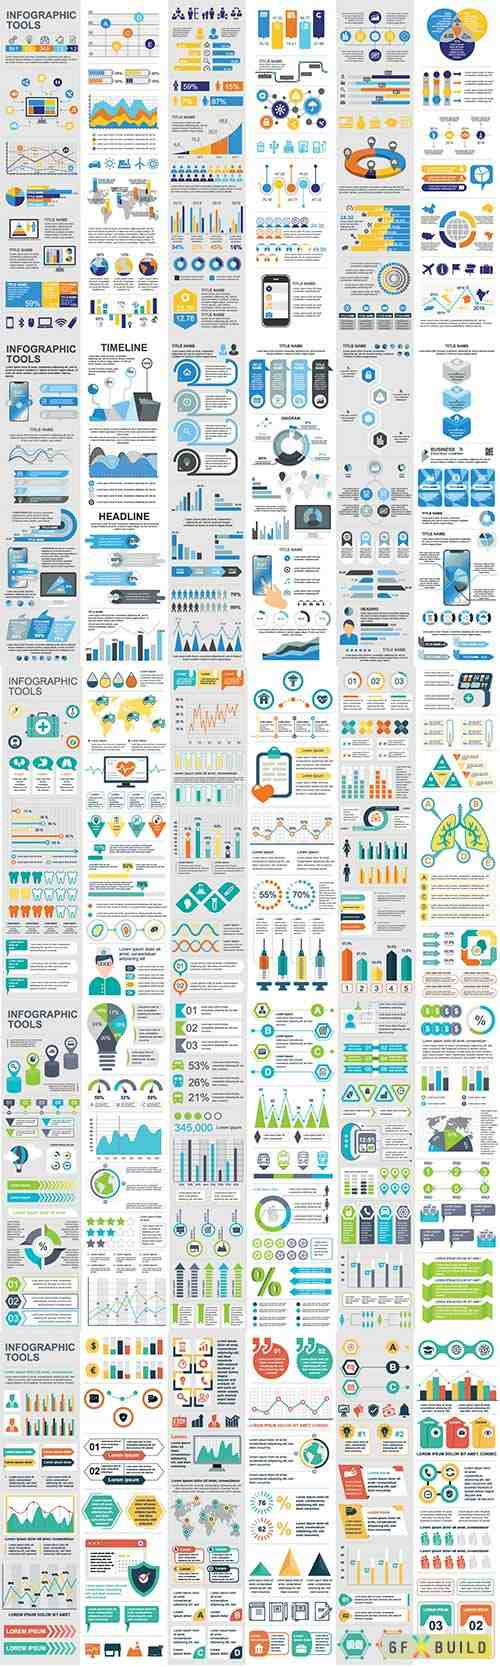 Infographic elements data visualization vector # 2